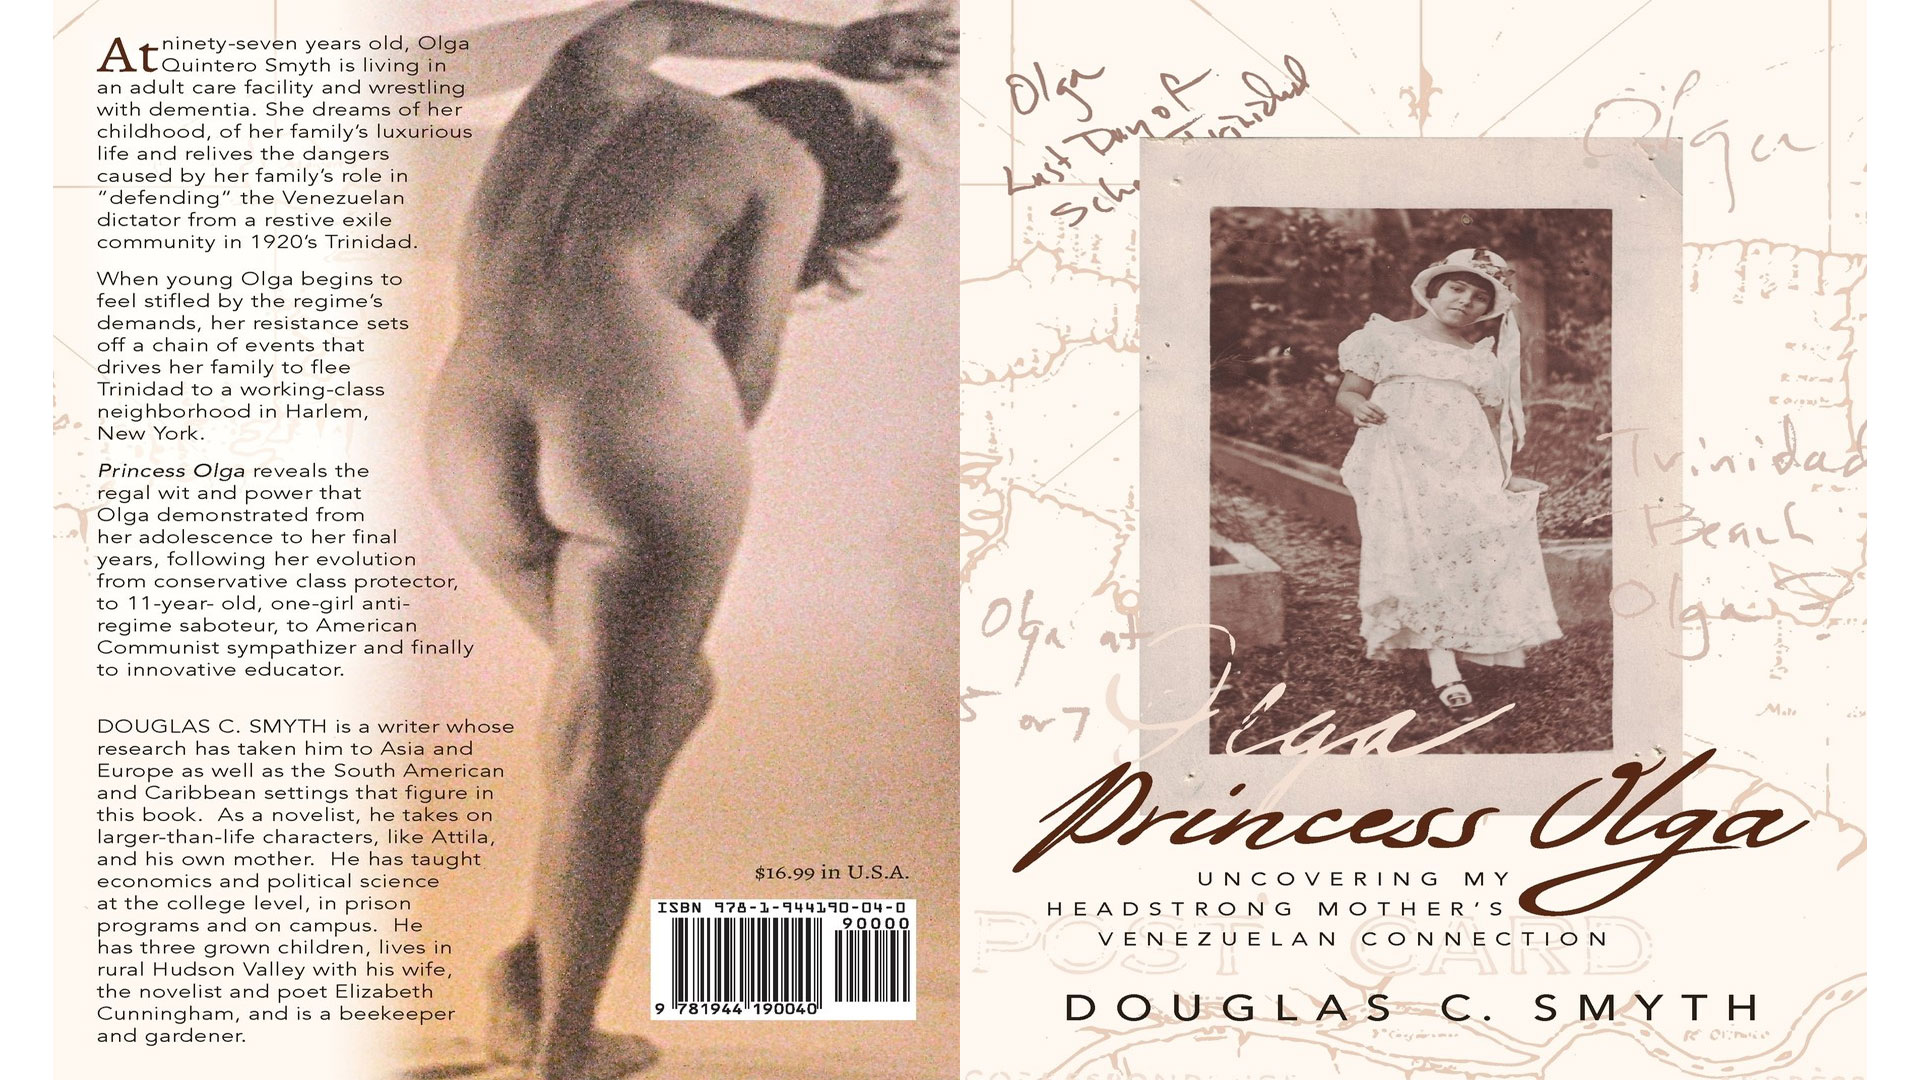 PRINCESS OLGA: UNCOVERING MY HEADSTRONG MOTHER'S VENEZUELAN CONNECTION, Click Here for Video & Podcast…